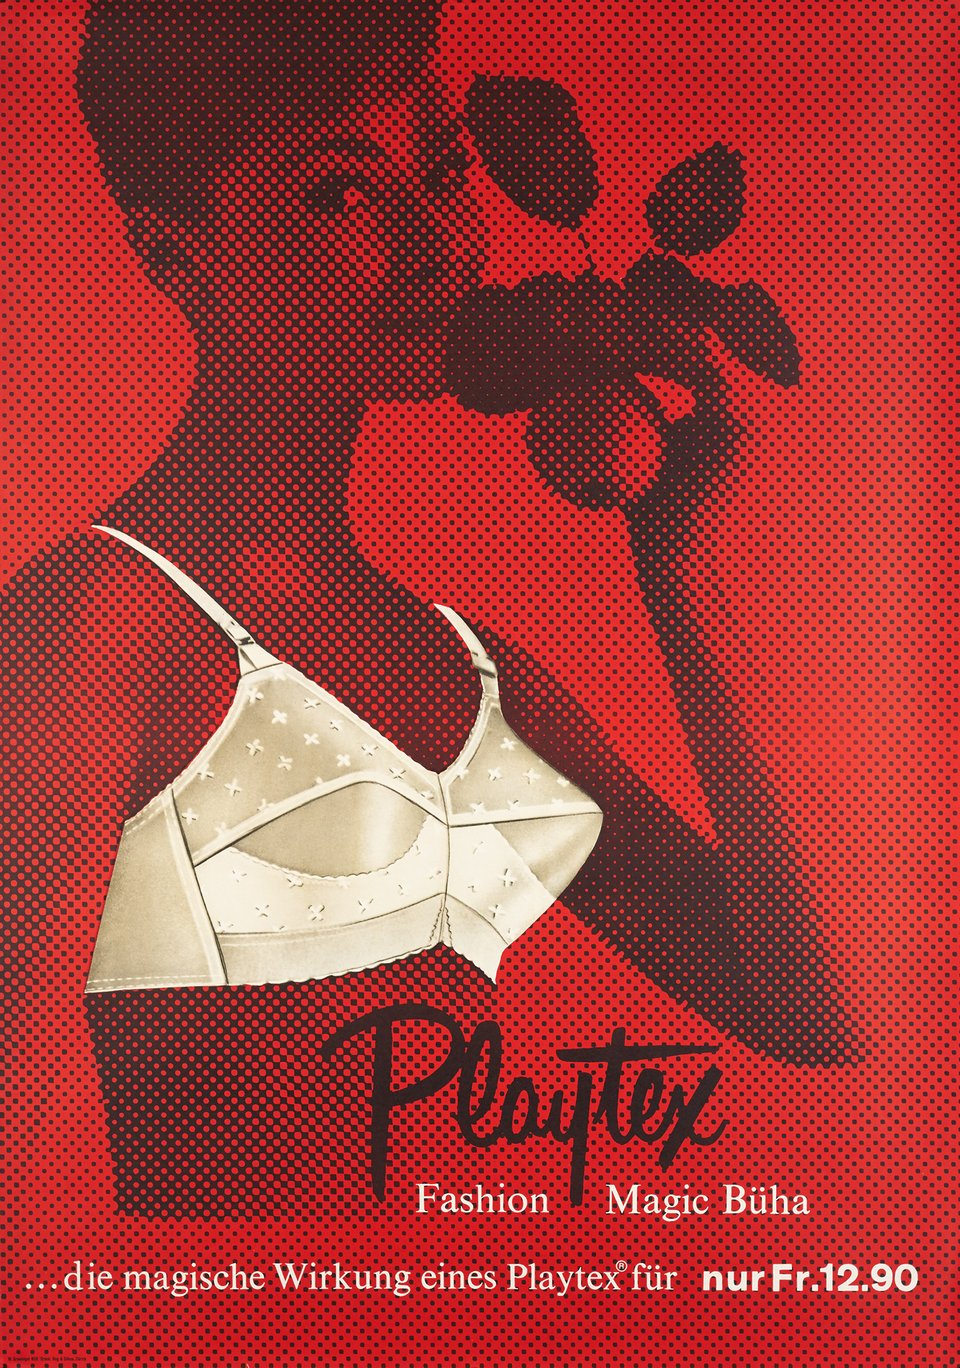 Playtex, Fashion Magic Büha – Vintage poster – Walter GREMINGER – 1958